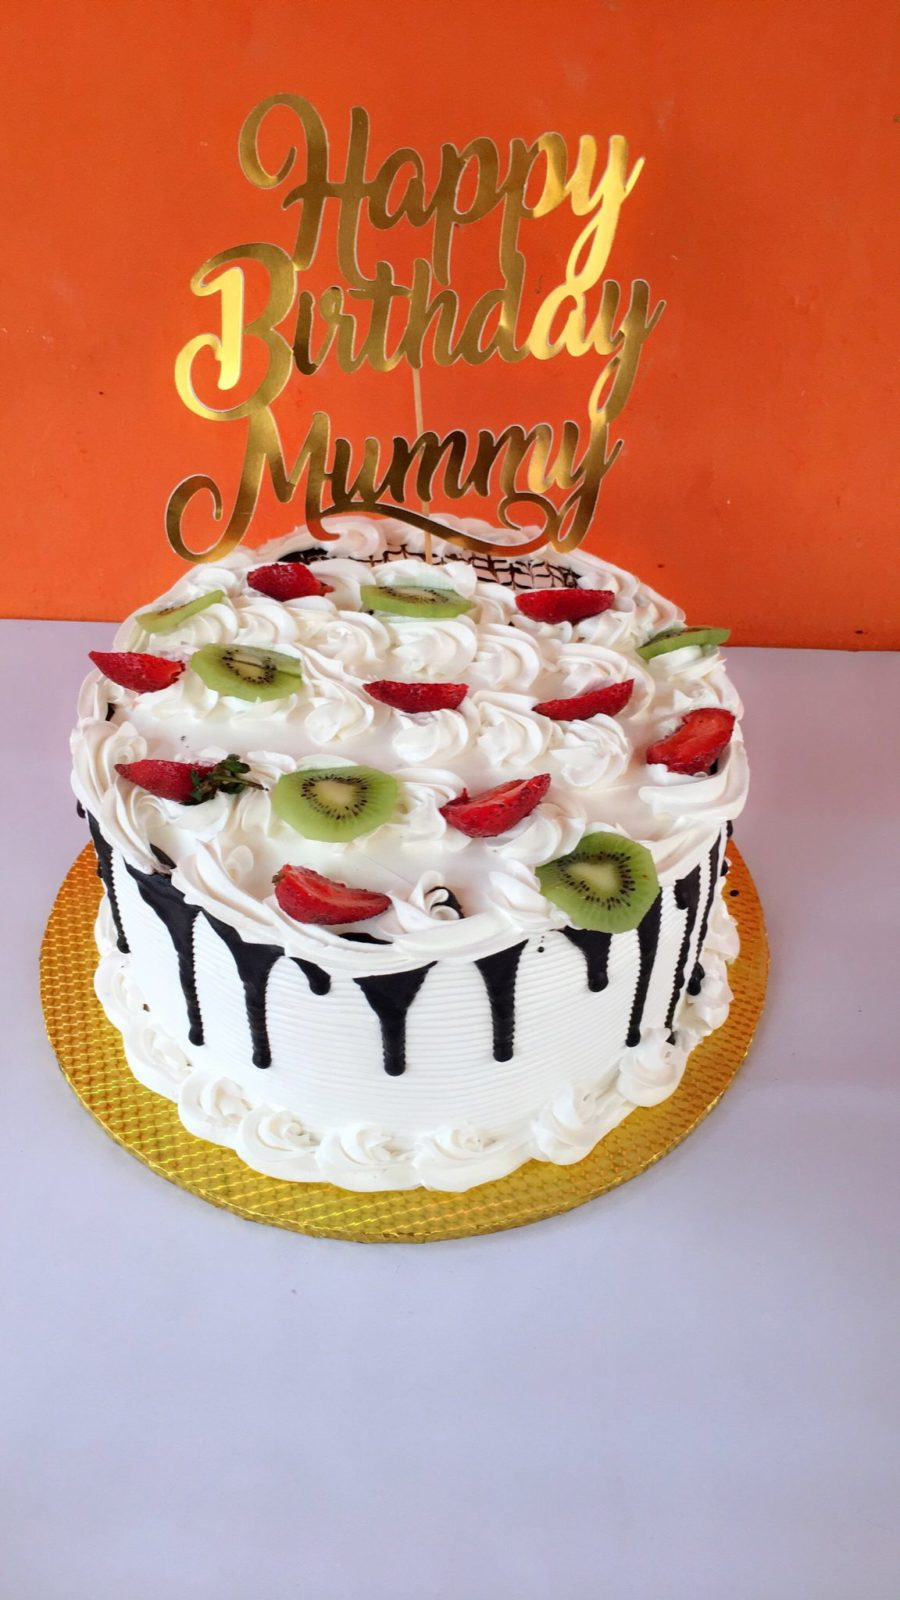 Zee cakes and fruits